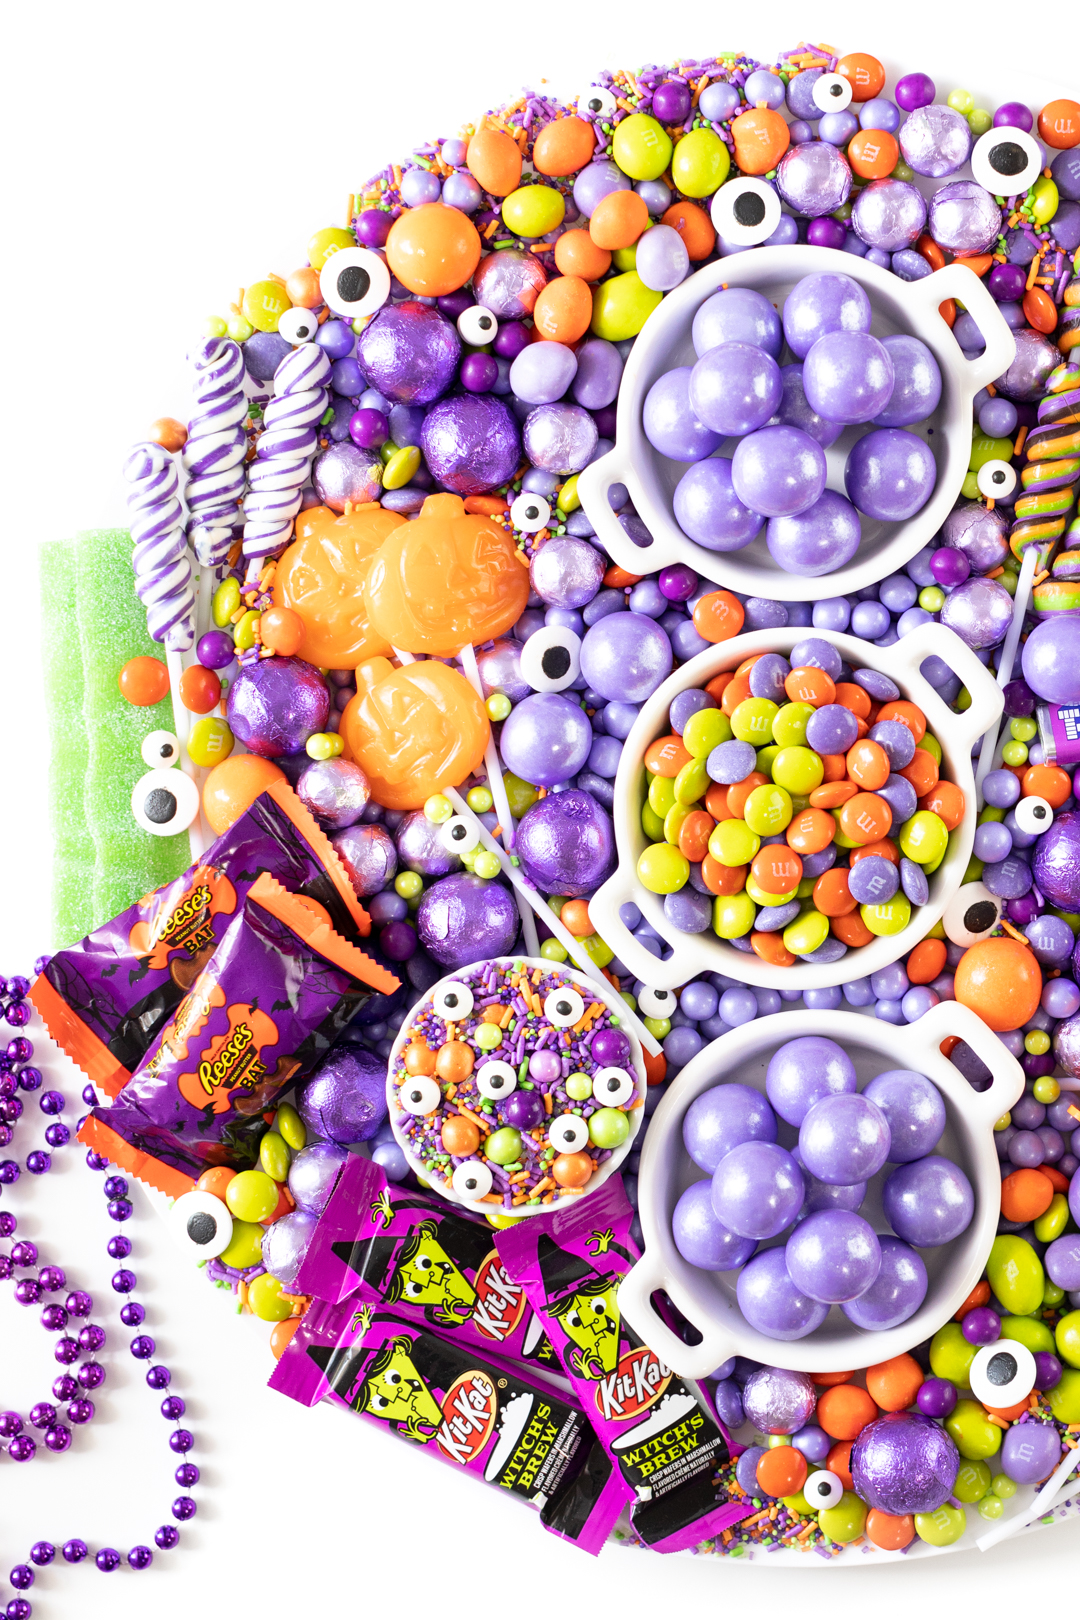 halloween candy selection. green, purple and orange. Halloween M&Ms, Gumballs, Jack o lantern Lollipops, witch chocolates